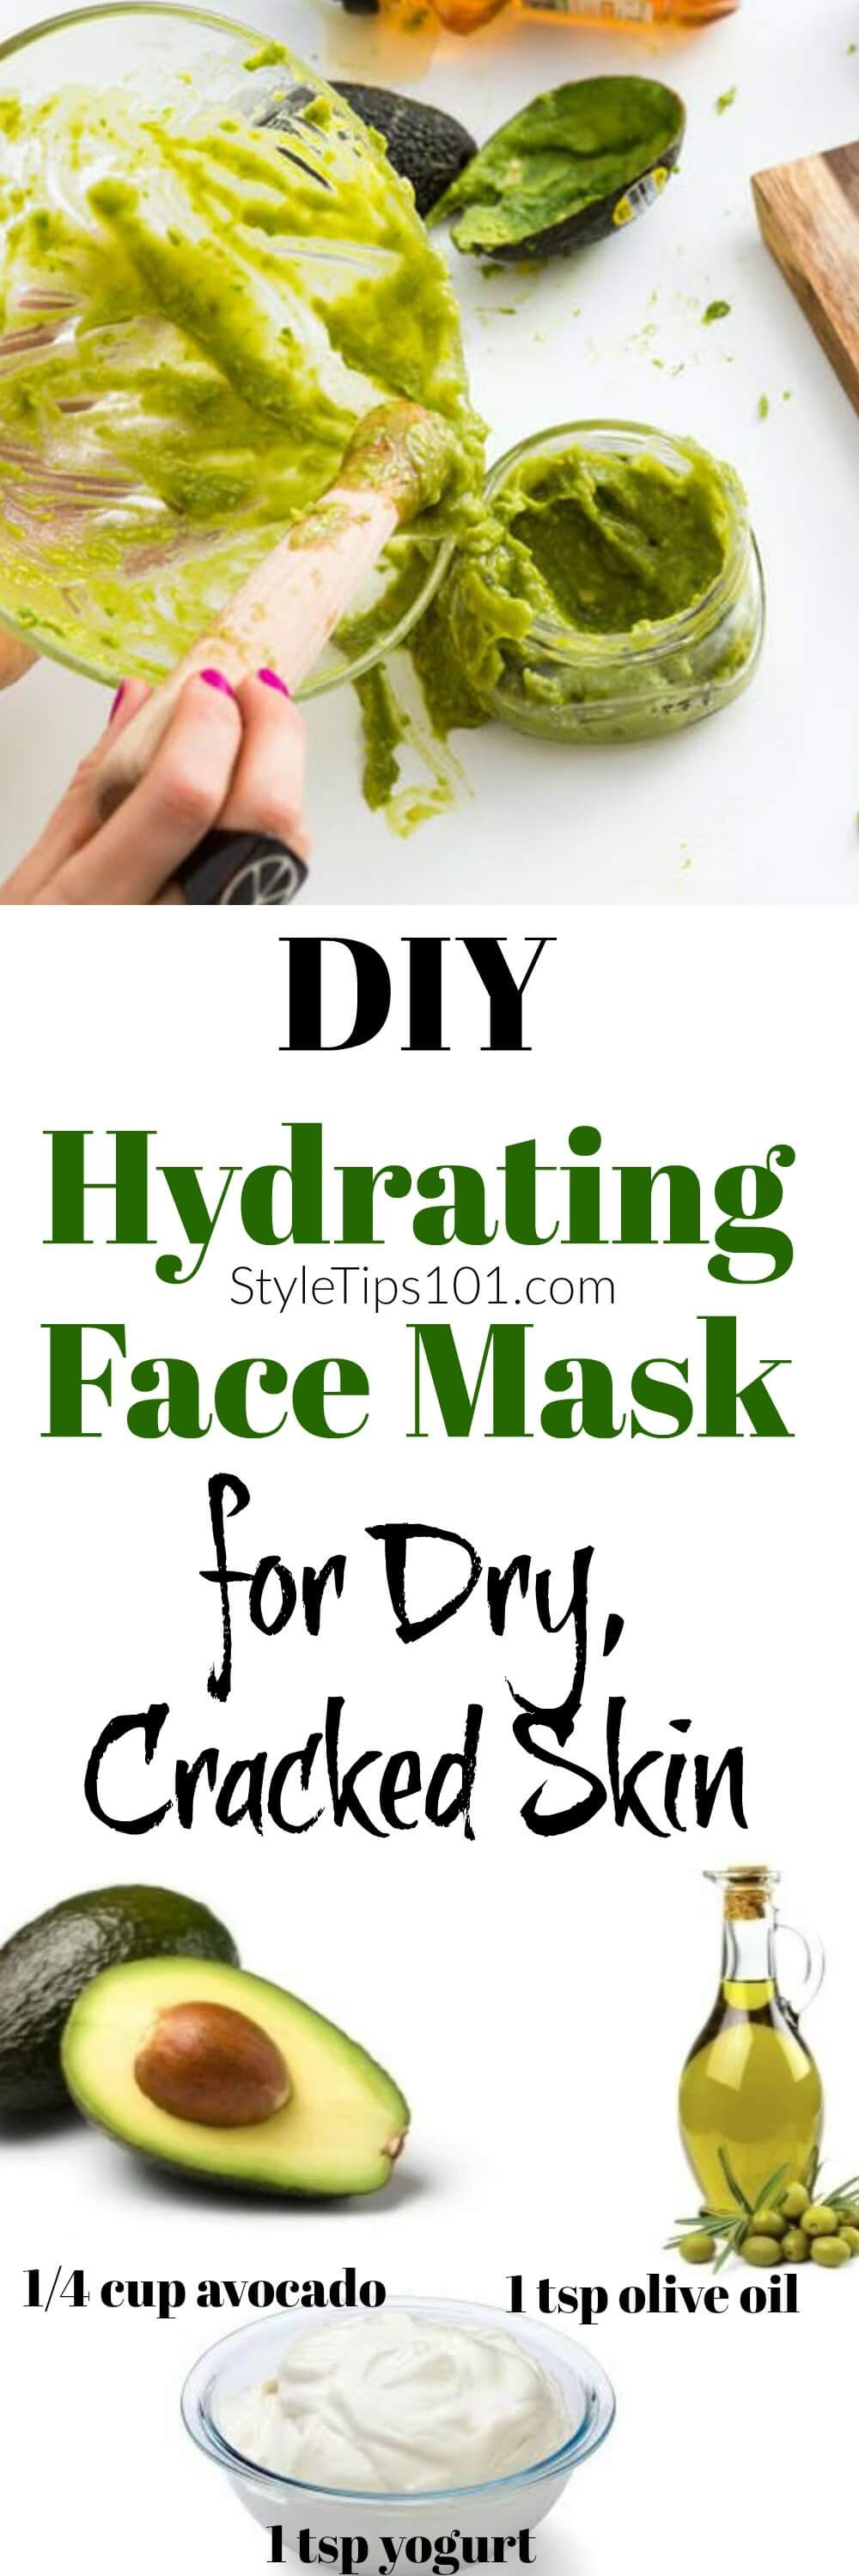 Best ideas about Hydrating Hair Mask DIY . Save or Pin DIY Hydrating Face Mask With Avocado & Yogurt Now.